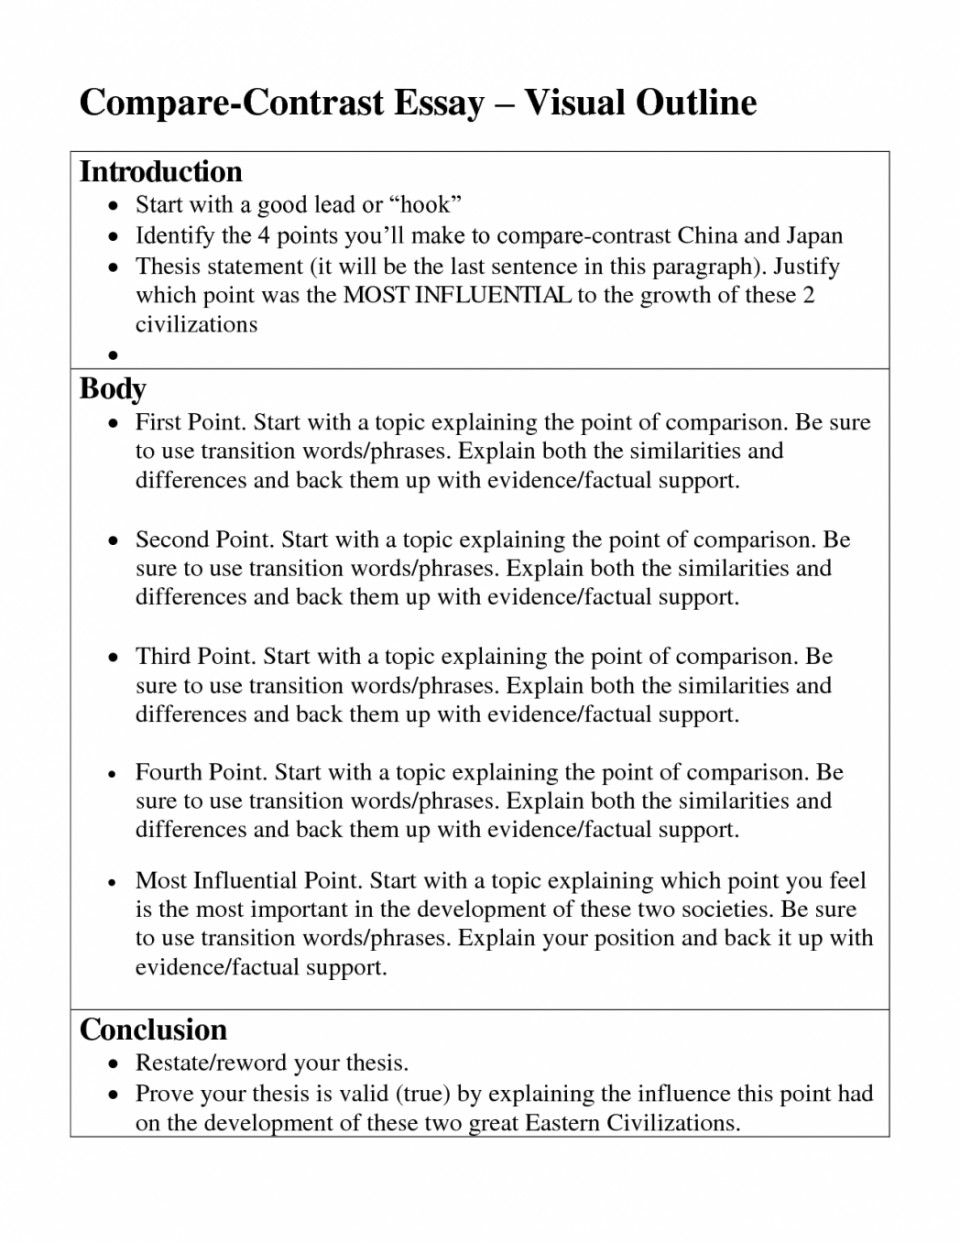 009 Compare And Contrast Essay Topics For High School Students English College Pdf Research Paper 1048x1356 Fantastic Elementary Ielts 960